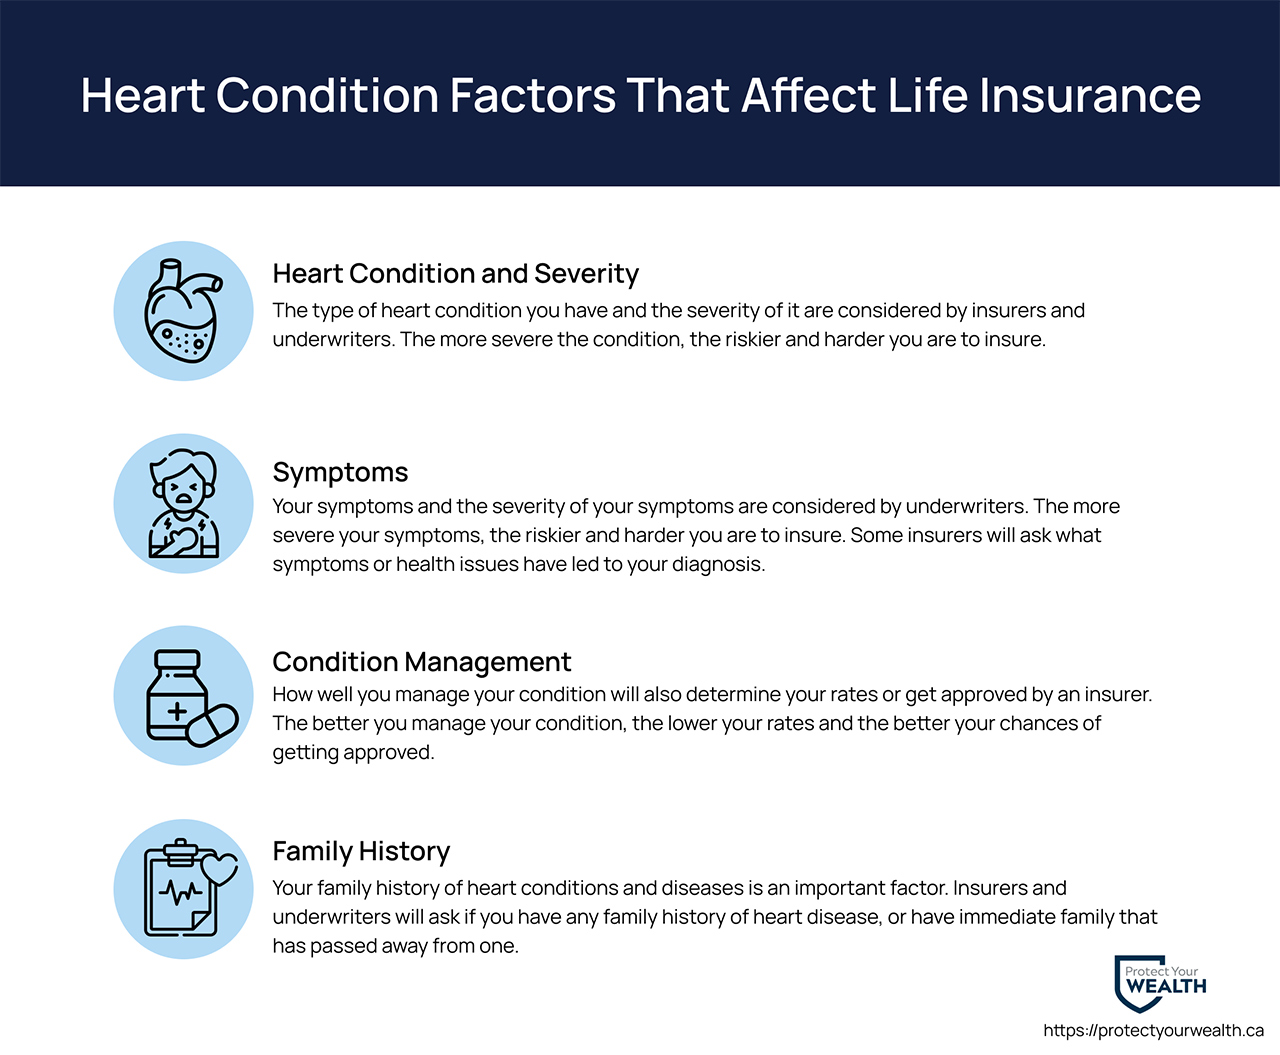 Heart condition factors that affect life insurance. The type of condition, how serious it is, how it's managed, your family history, and symptoms are all factors considered.